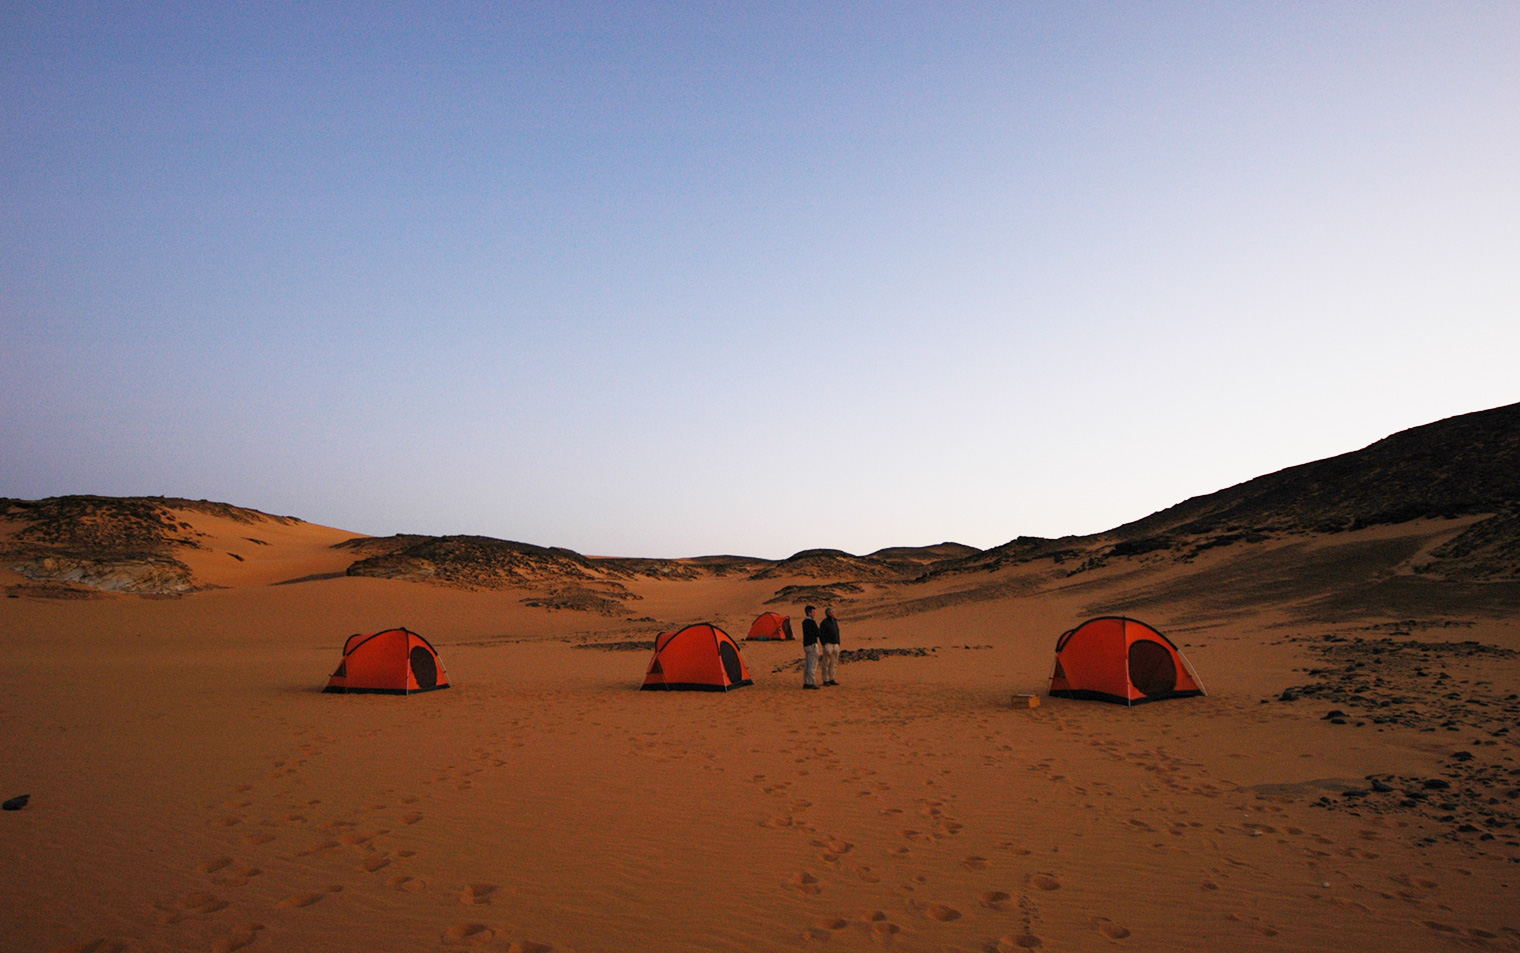 Sudan-Old-Dongola-Wild-Camping-Tents